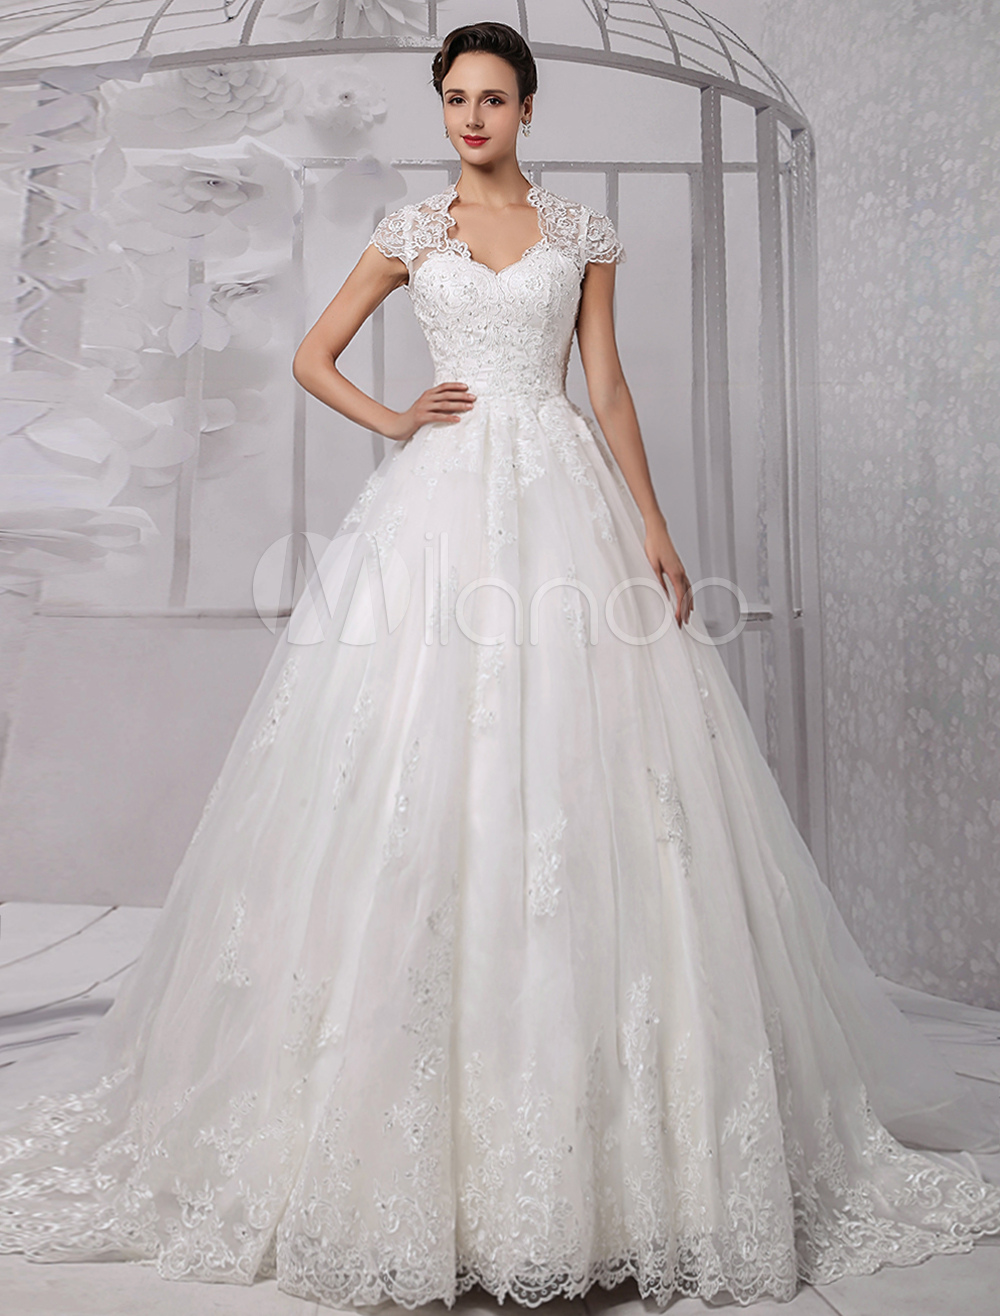 Wedding Dresses Ball Gown Lace Bridal Dress Beading Cap Sleeve Ivory Wedding Gown With Train